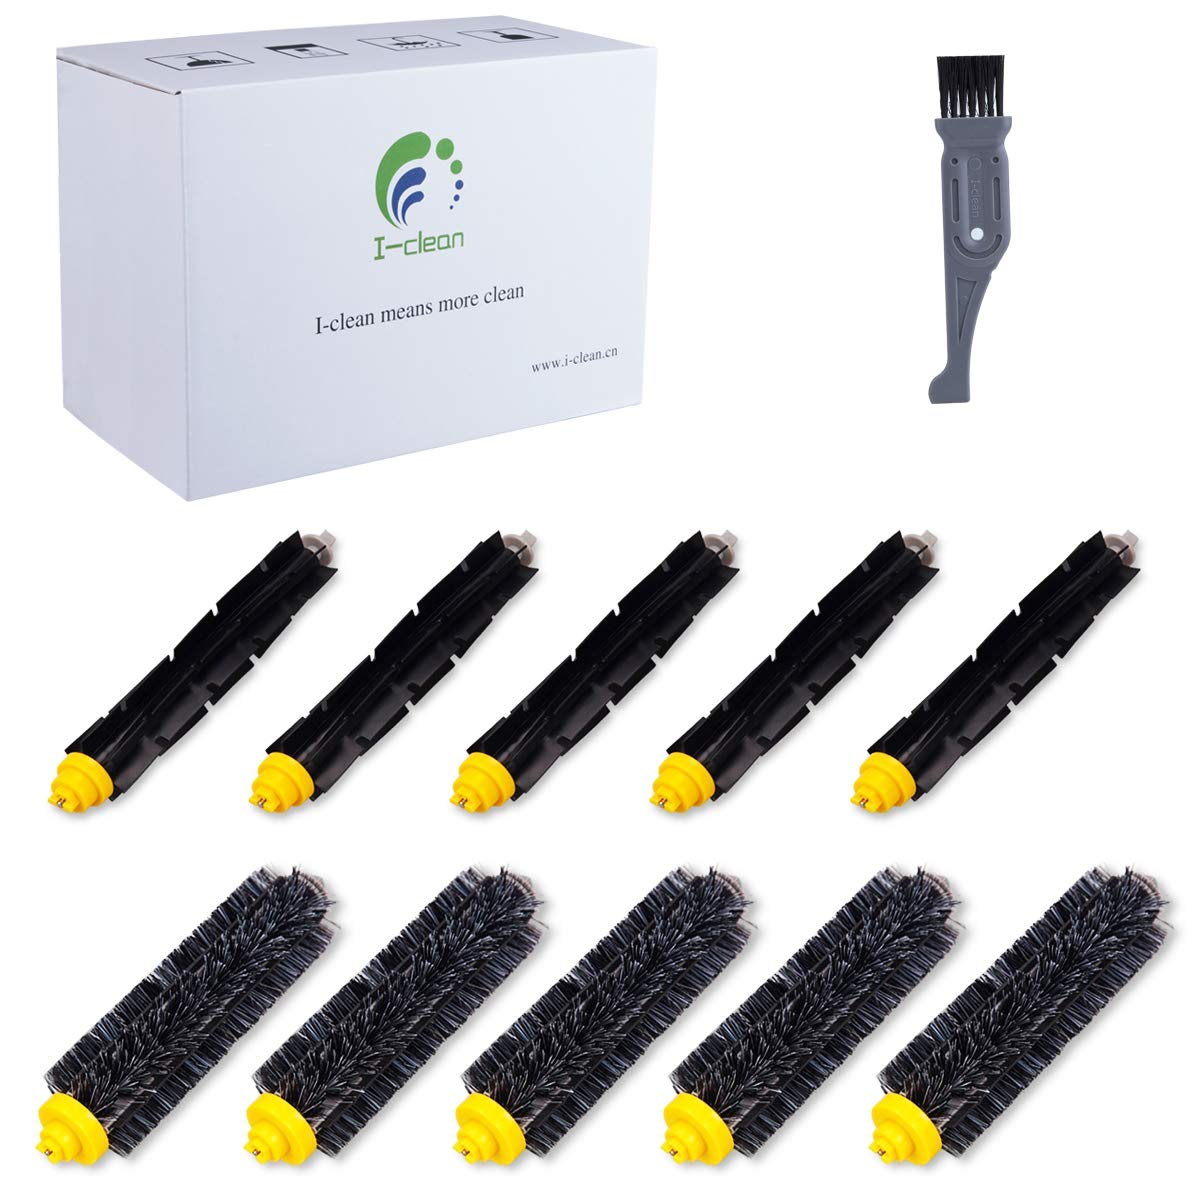 I clean Roomba Replenishment Kits, 10 Packs Brush Accessories Parts Compatible with iRobot Roomba 650 675 690 770 780 790 Vacuum Cleaner (600&700 Series),with A Free Cleaning Brush by I clean